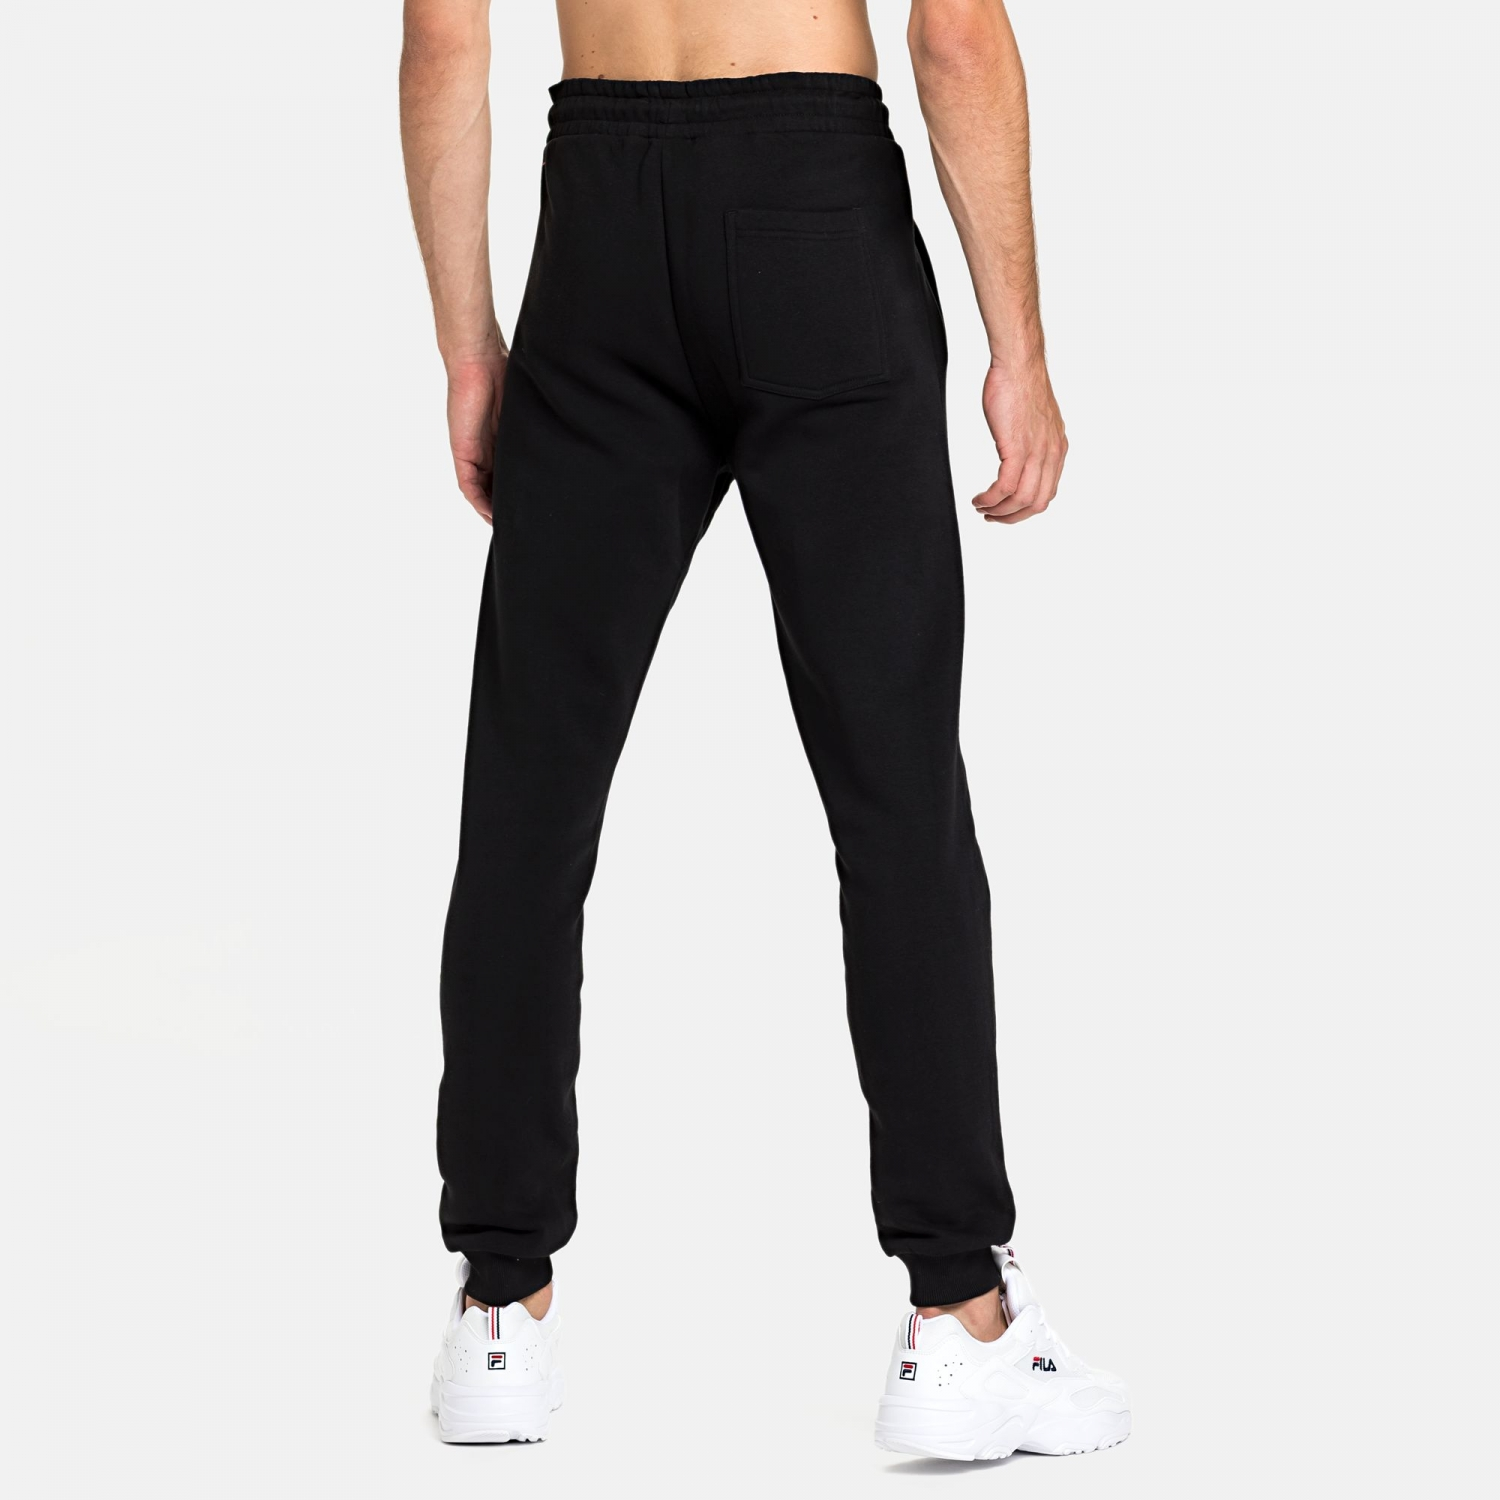 Fila Edan Sweat Pants black Bild 2